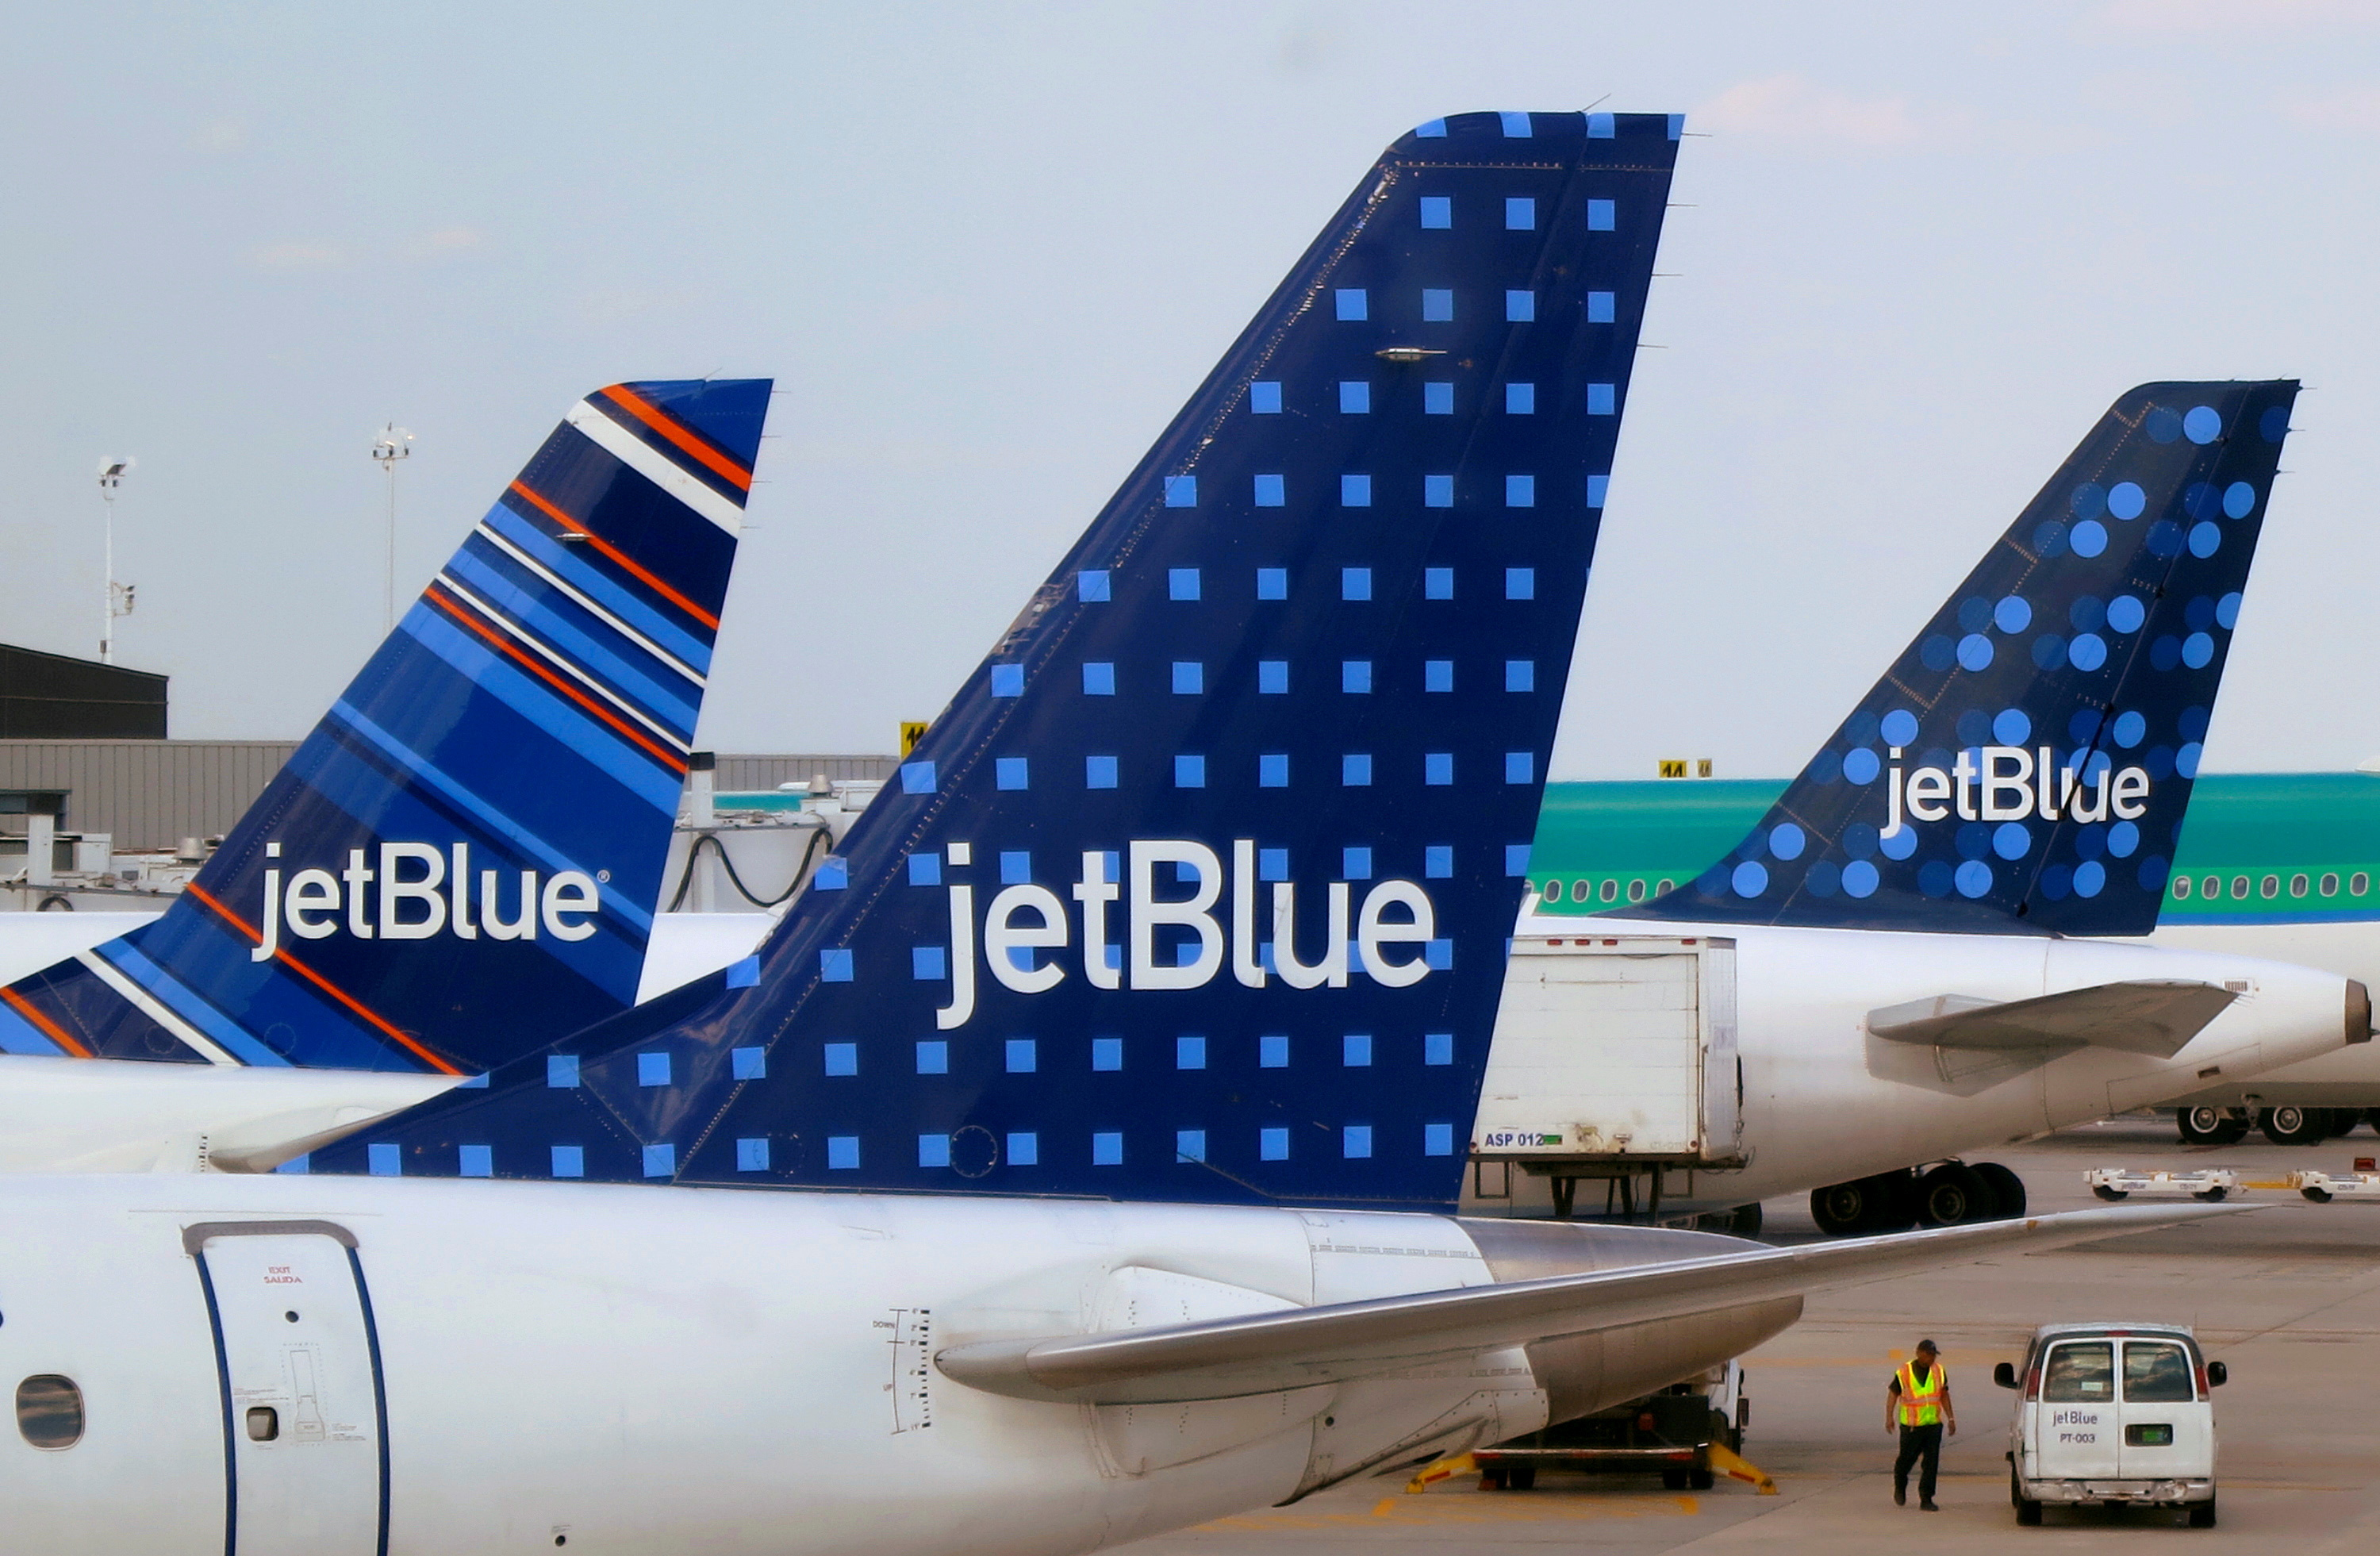 JetBlue Airways aircraft are pictured at departure gates at John F. Kennedy International Airport in New York June 15, 2013. REUTERS/Fred Prouser/File Photo